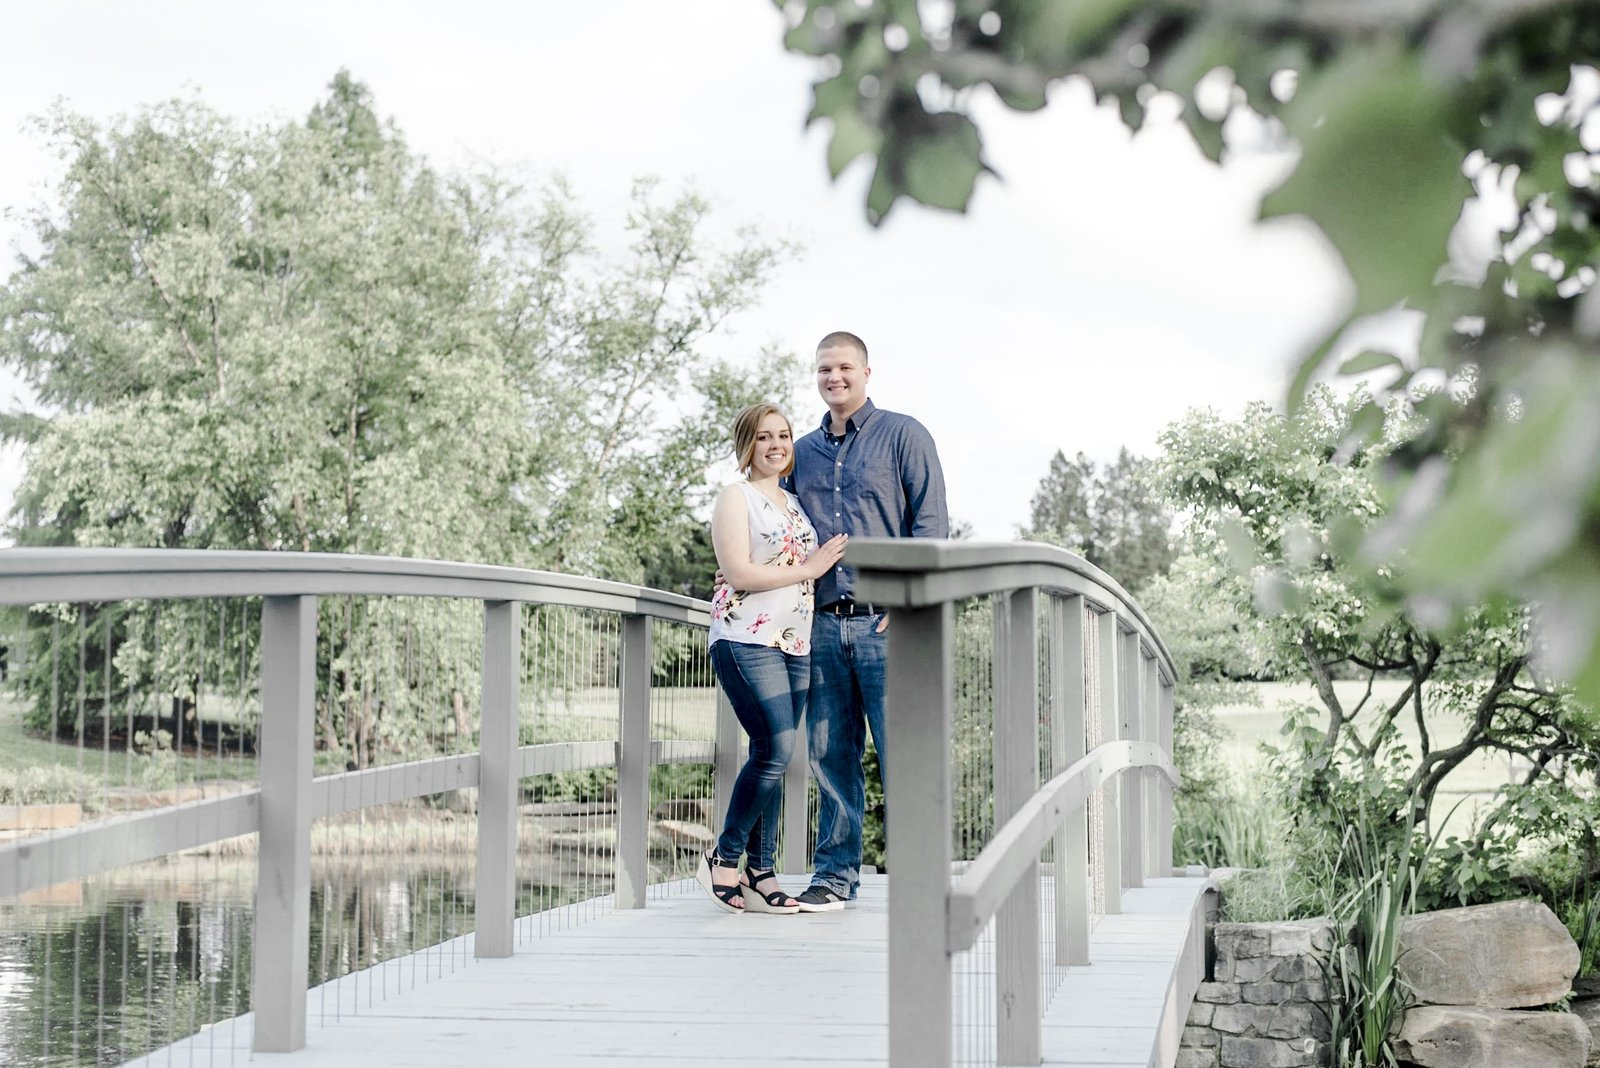 Cassidy_Alane_Photography-Tori_&_Jarek-Cox_Arboretum-Ohio_Engagement_Photographer-02